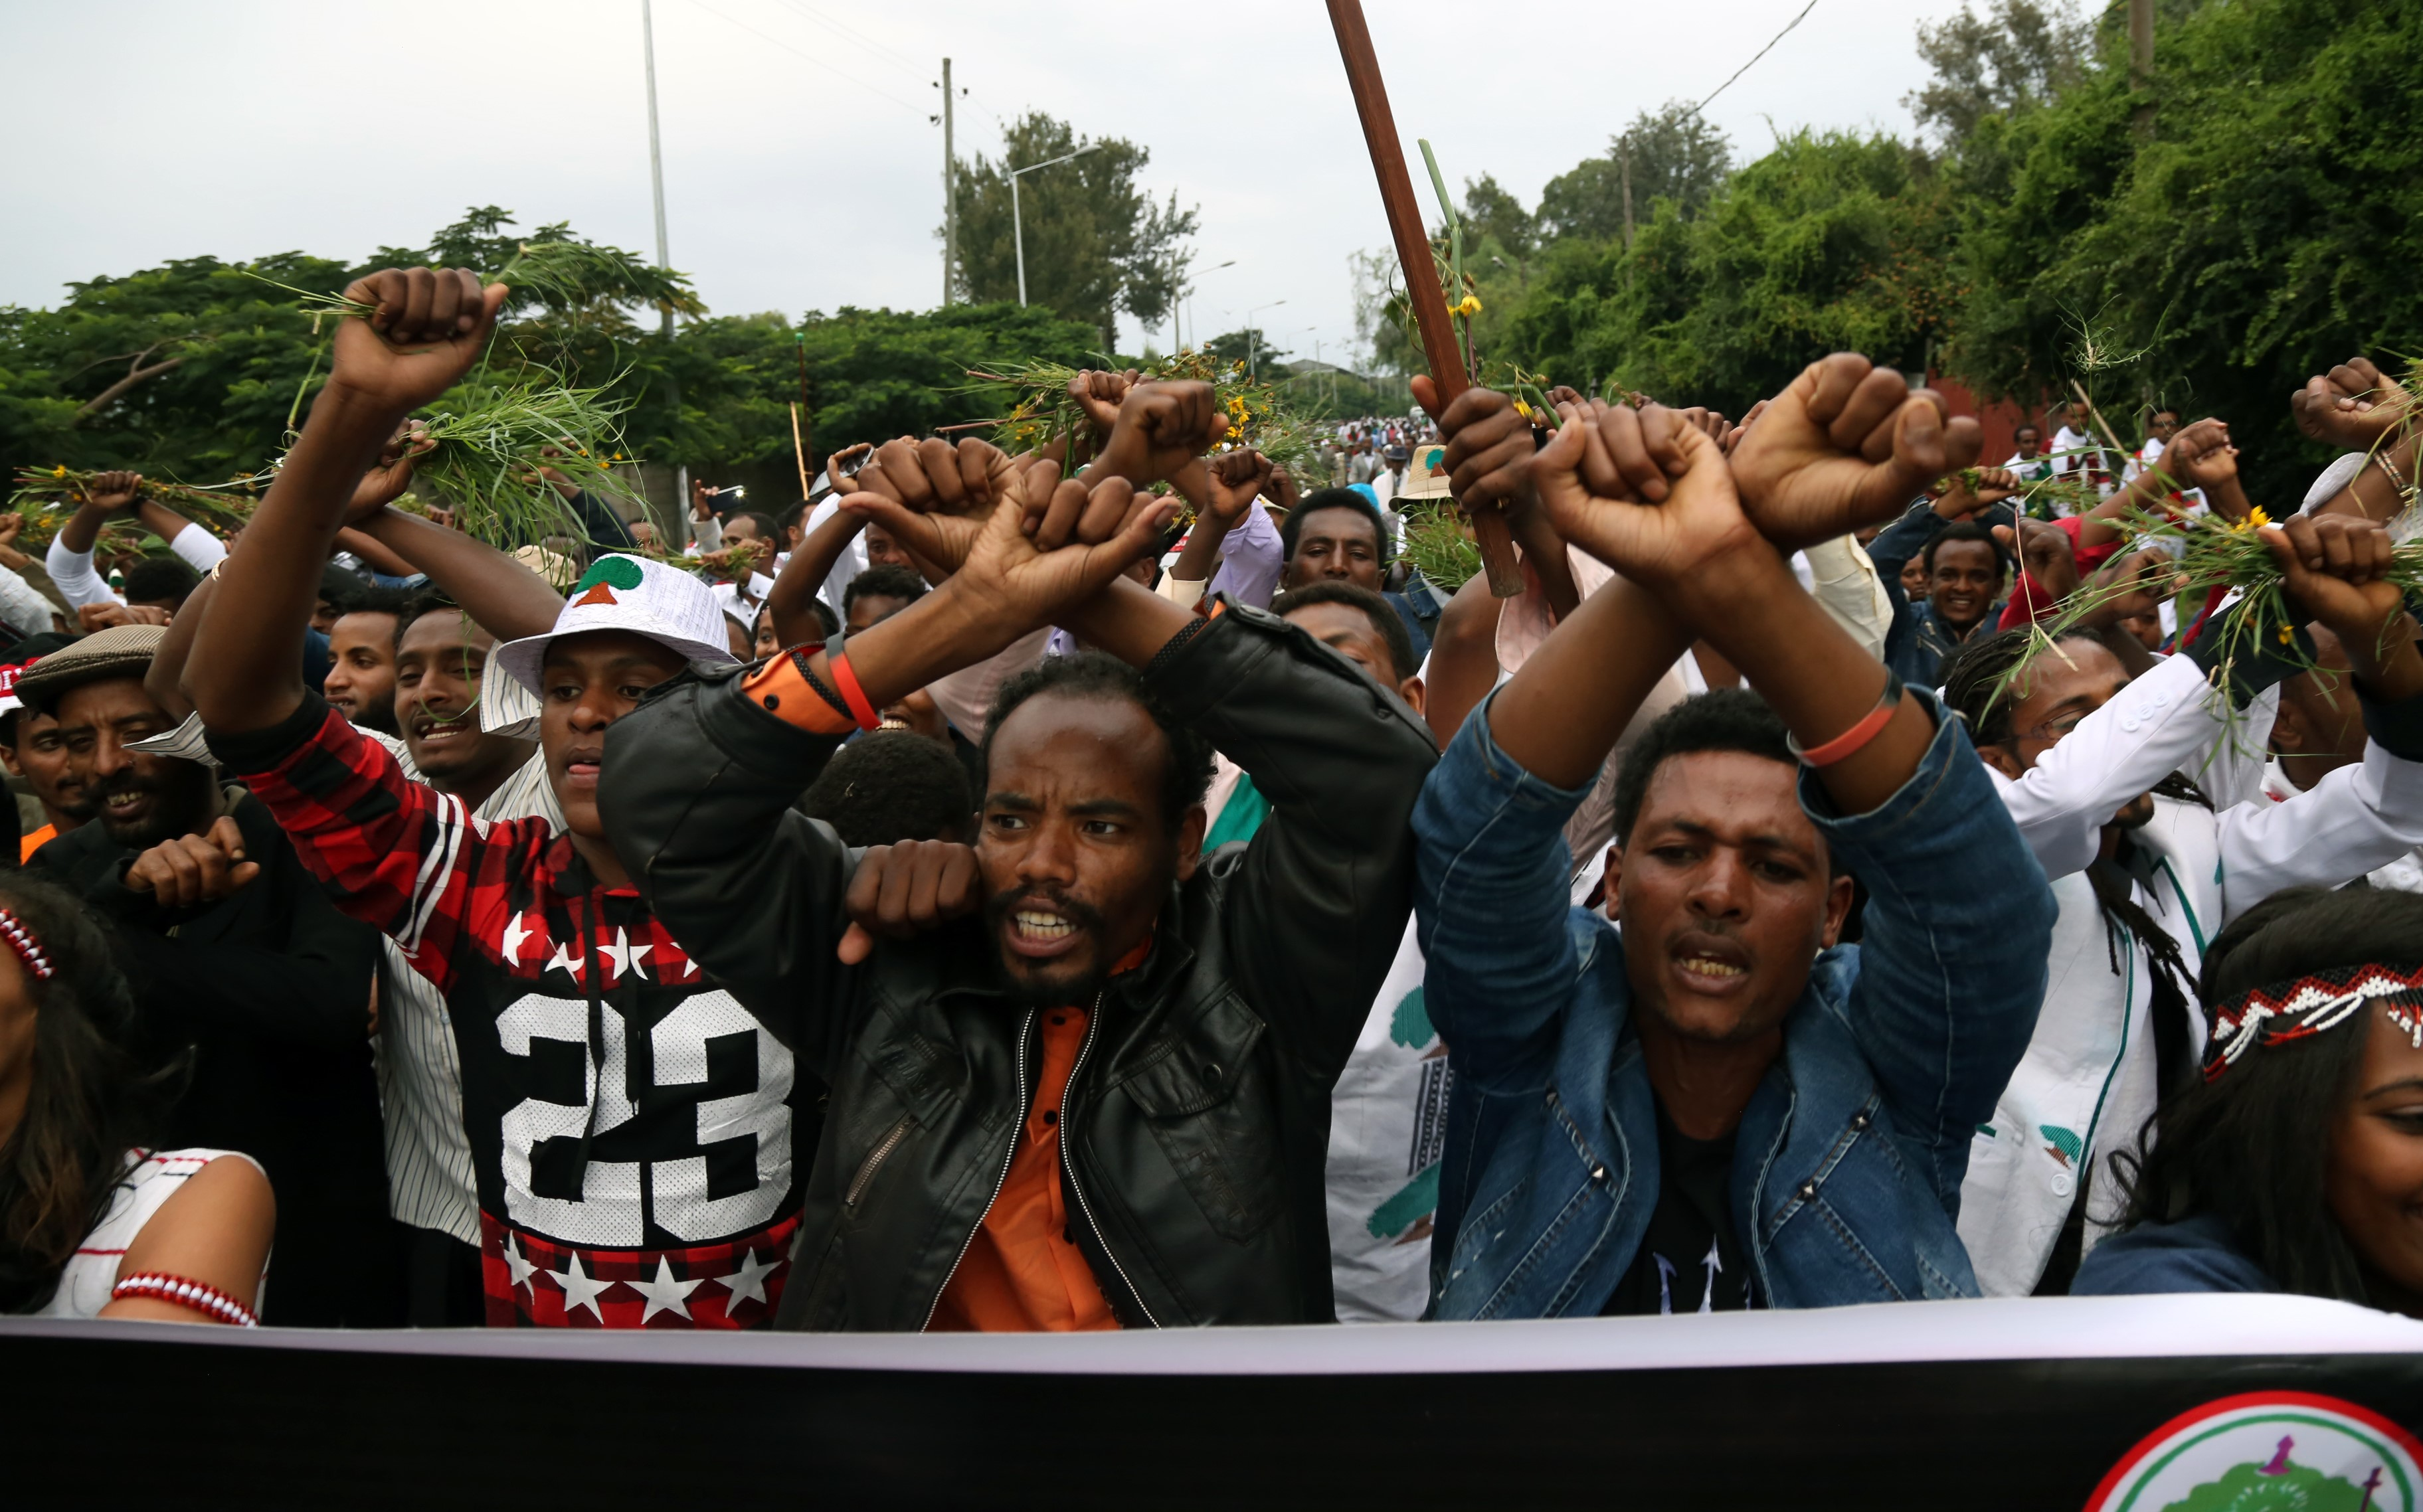 Oromo people stage a protest against government during the Oromo new year holiday Irreechaa' near the Hora Lake at Dberzit town in Addis Ababa, Ethiophia on October 2, 2016.